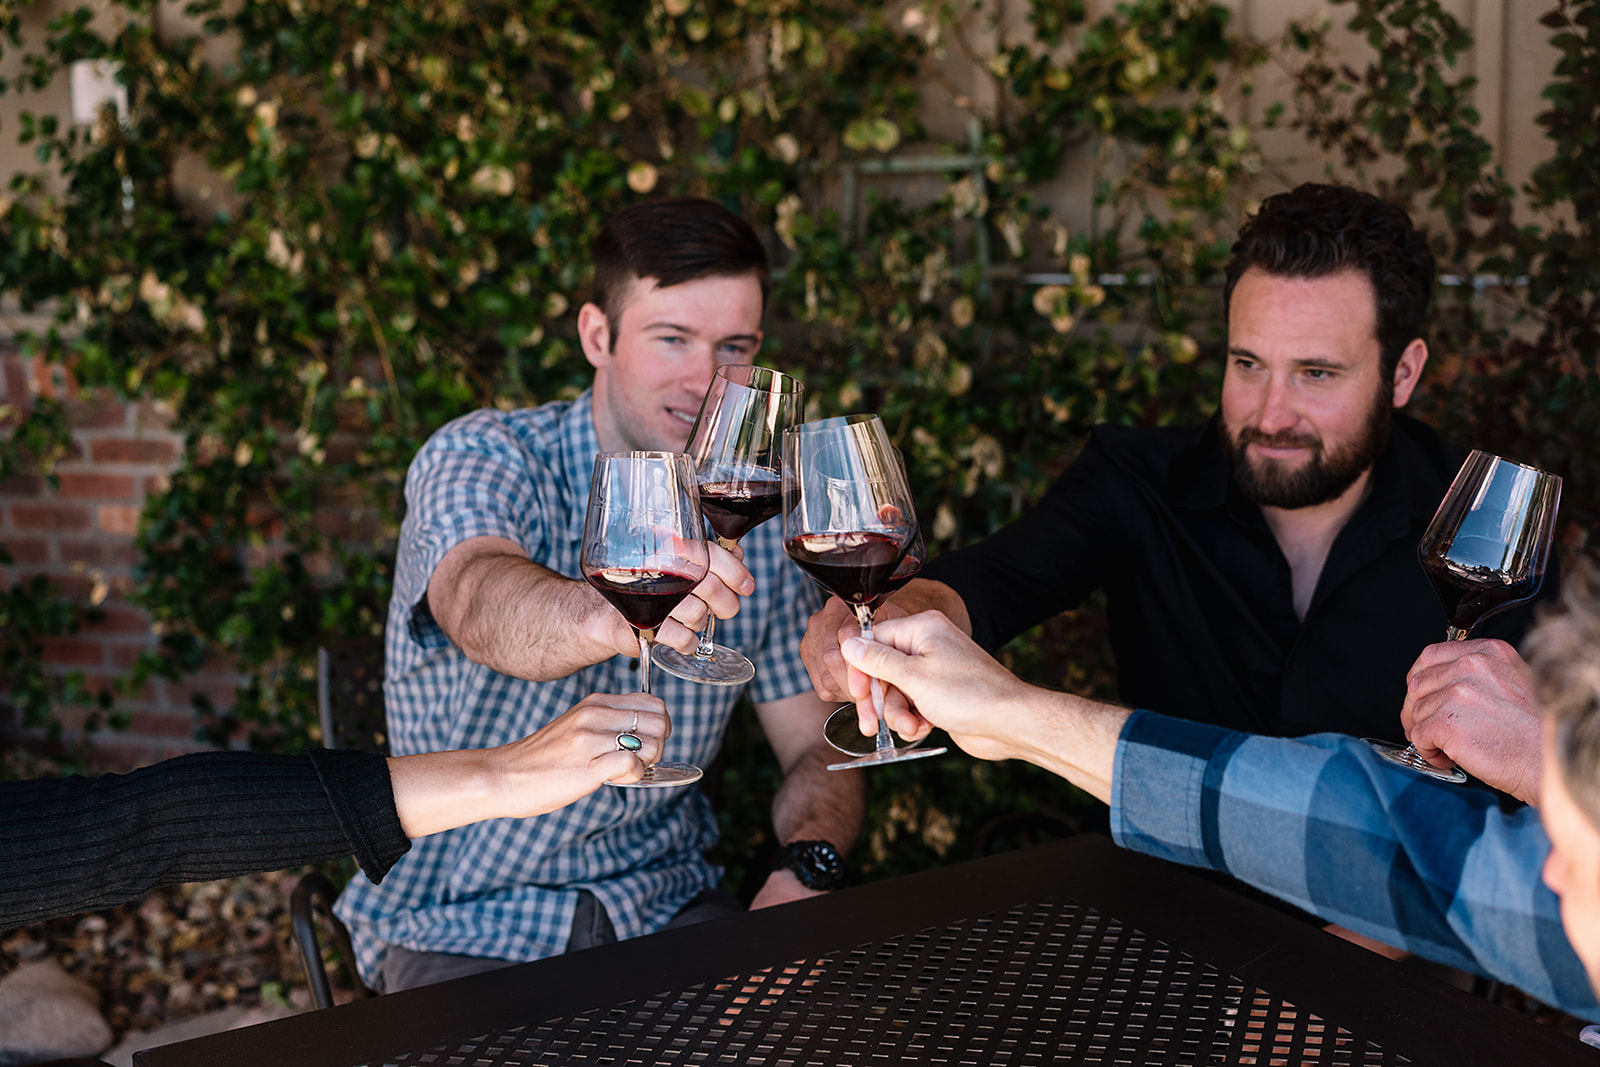 People sitting at a table outside cheers each other with glasses of red wine.